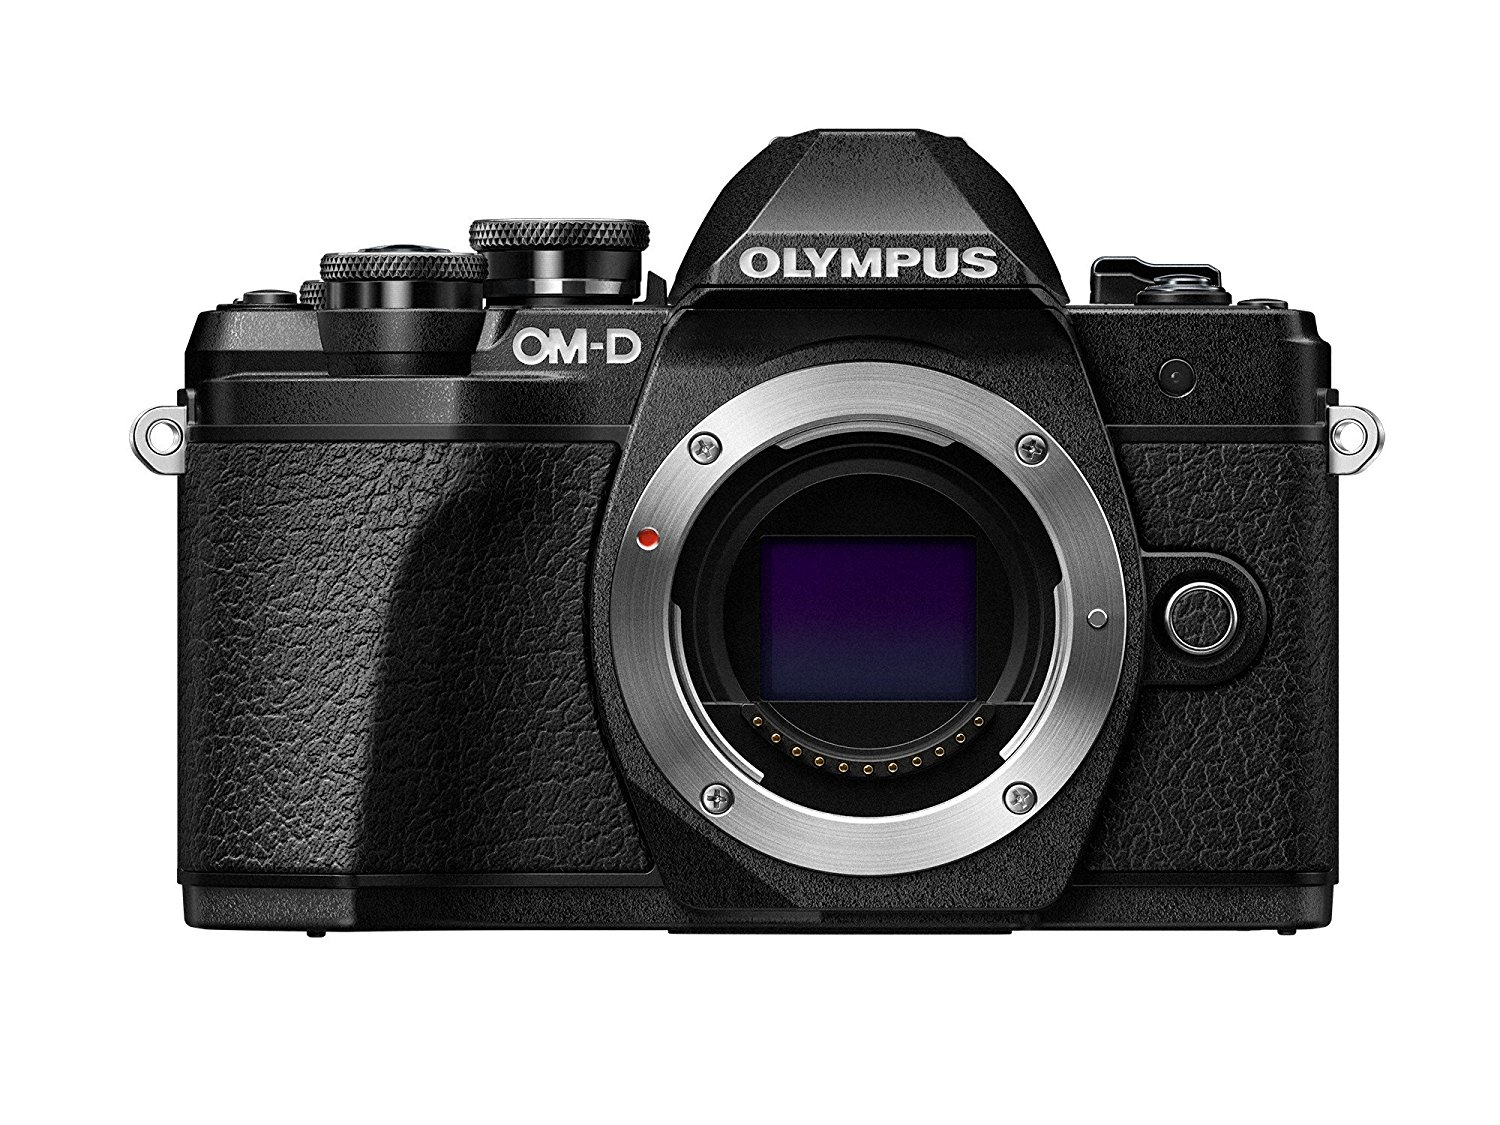 Hot Deal: Olympus OM-D E-M10 Mark III for $399!